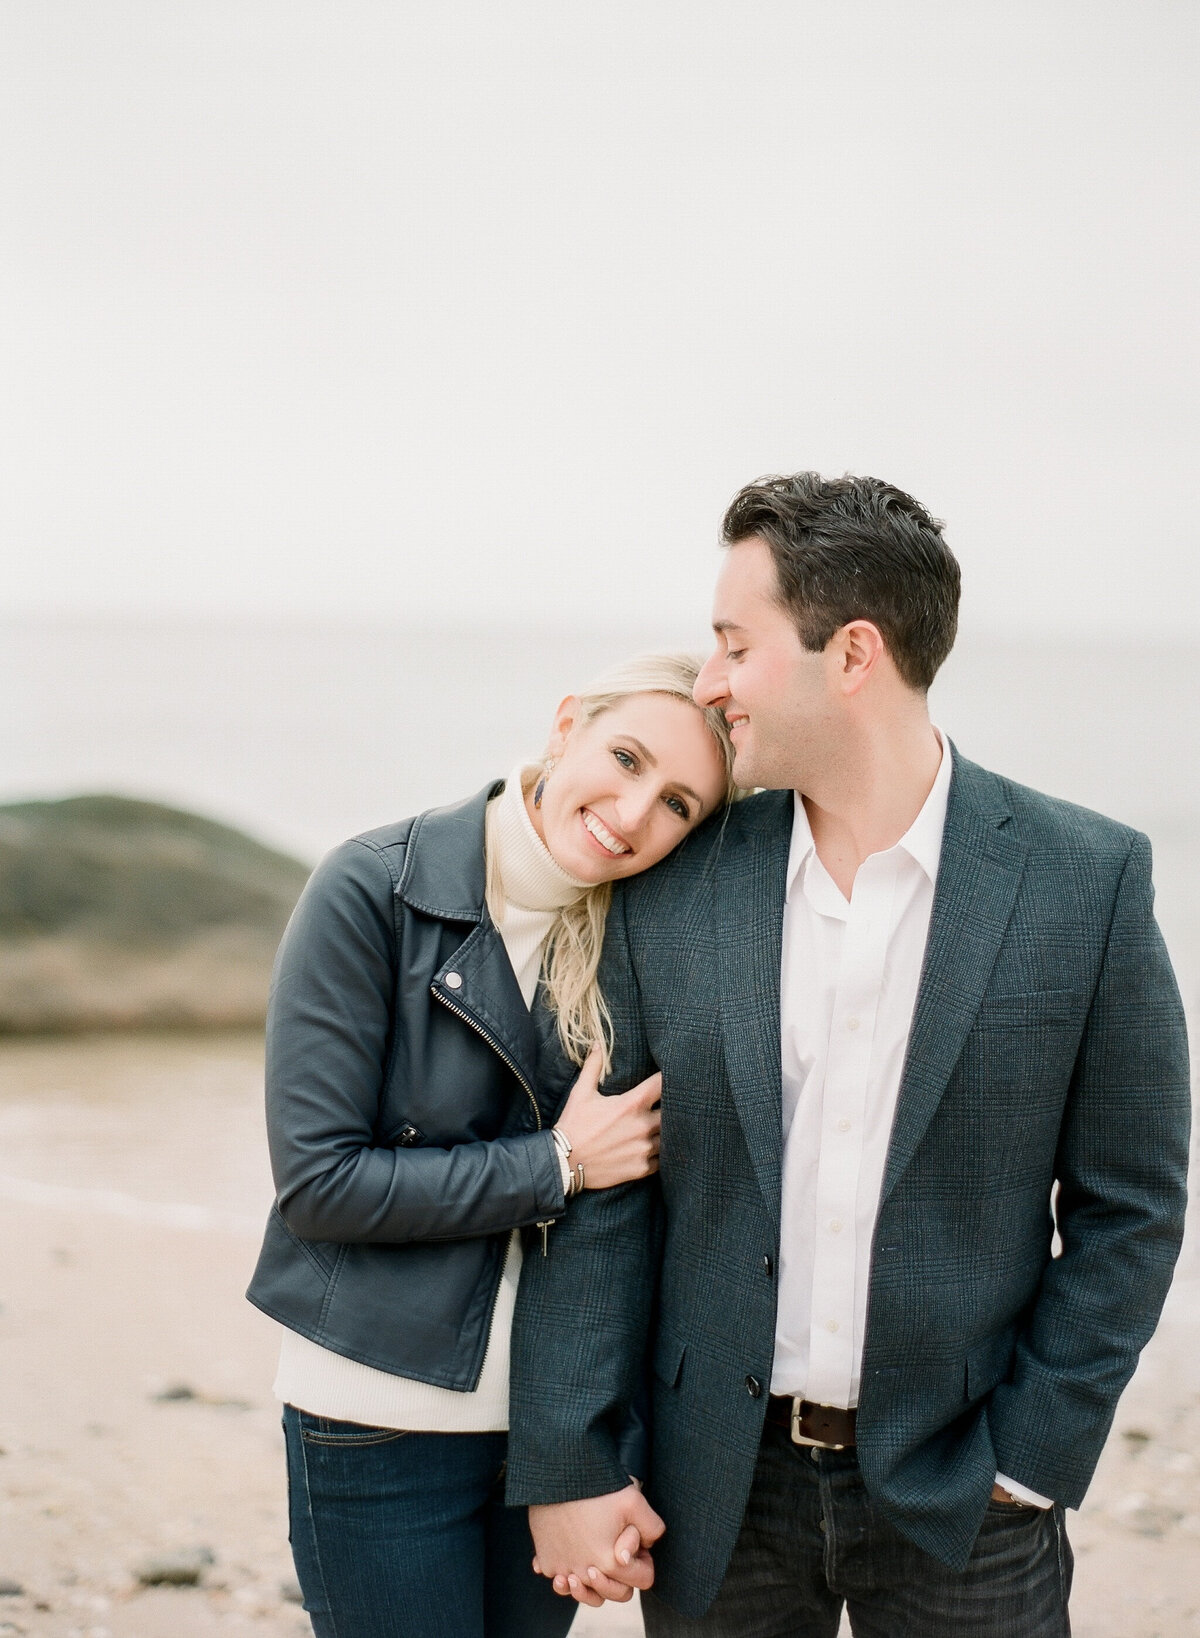 686 TWAH-DOUGHERTY-BEACH-ENGAGEMENT-SESSION